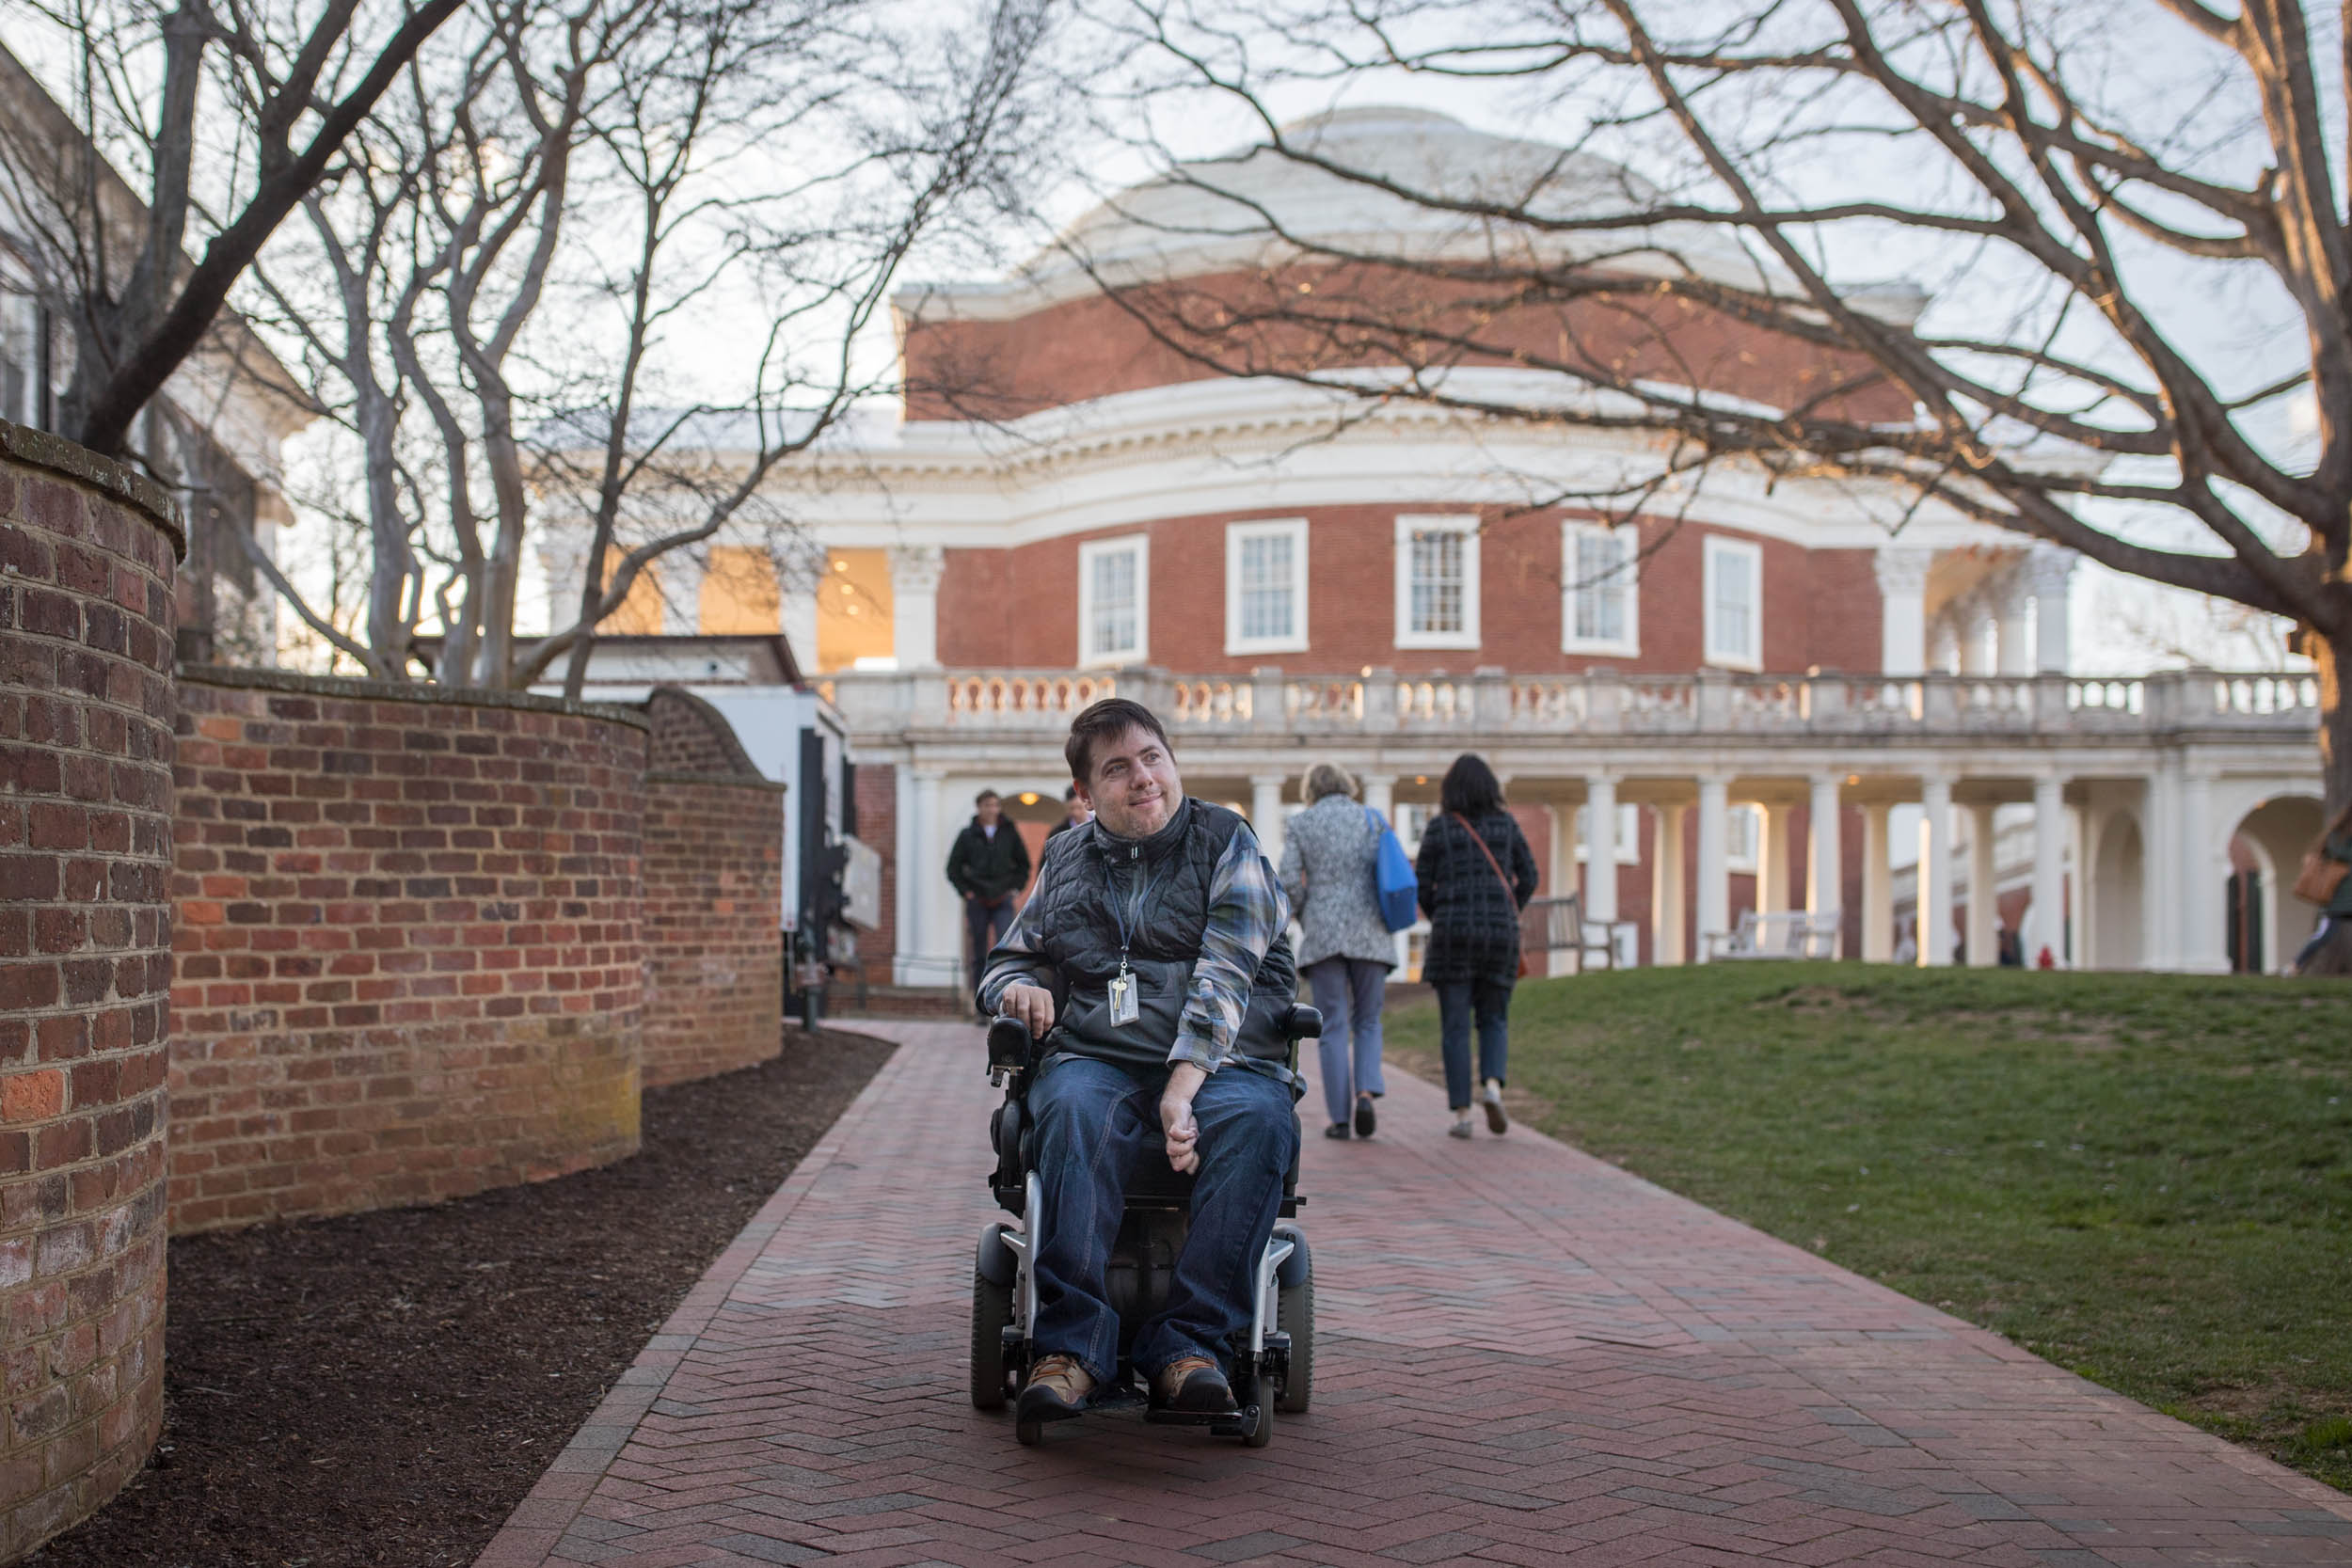 Guest is a member of the UVA Disability Advocacy and Action Committee, which works on improving access in a variety of ways, from physical mobility to educational opportunities in disability studies.